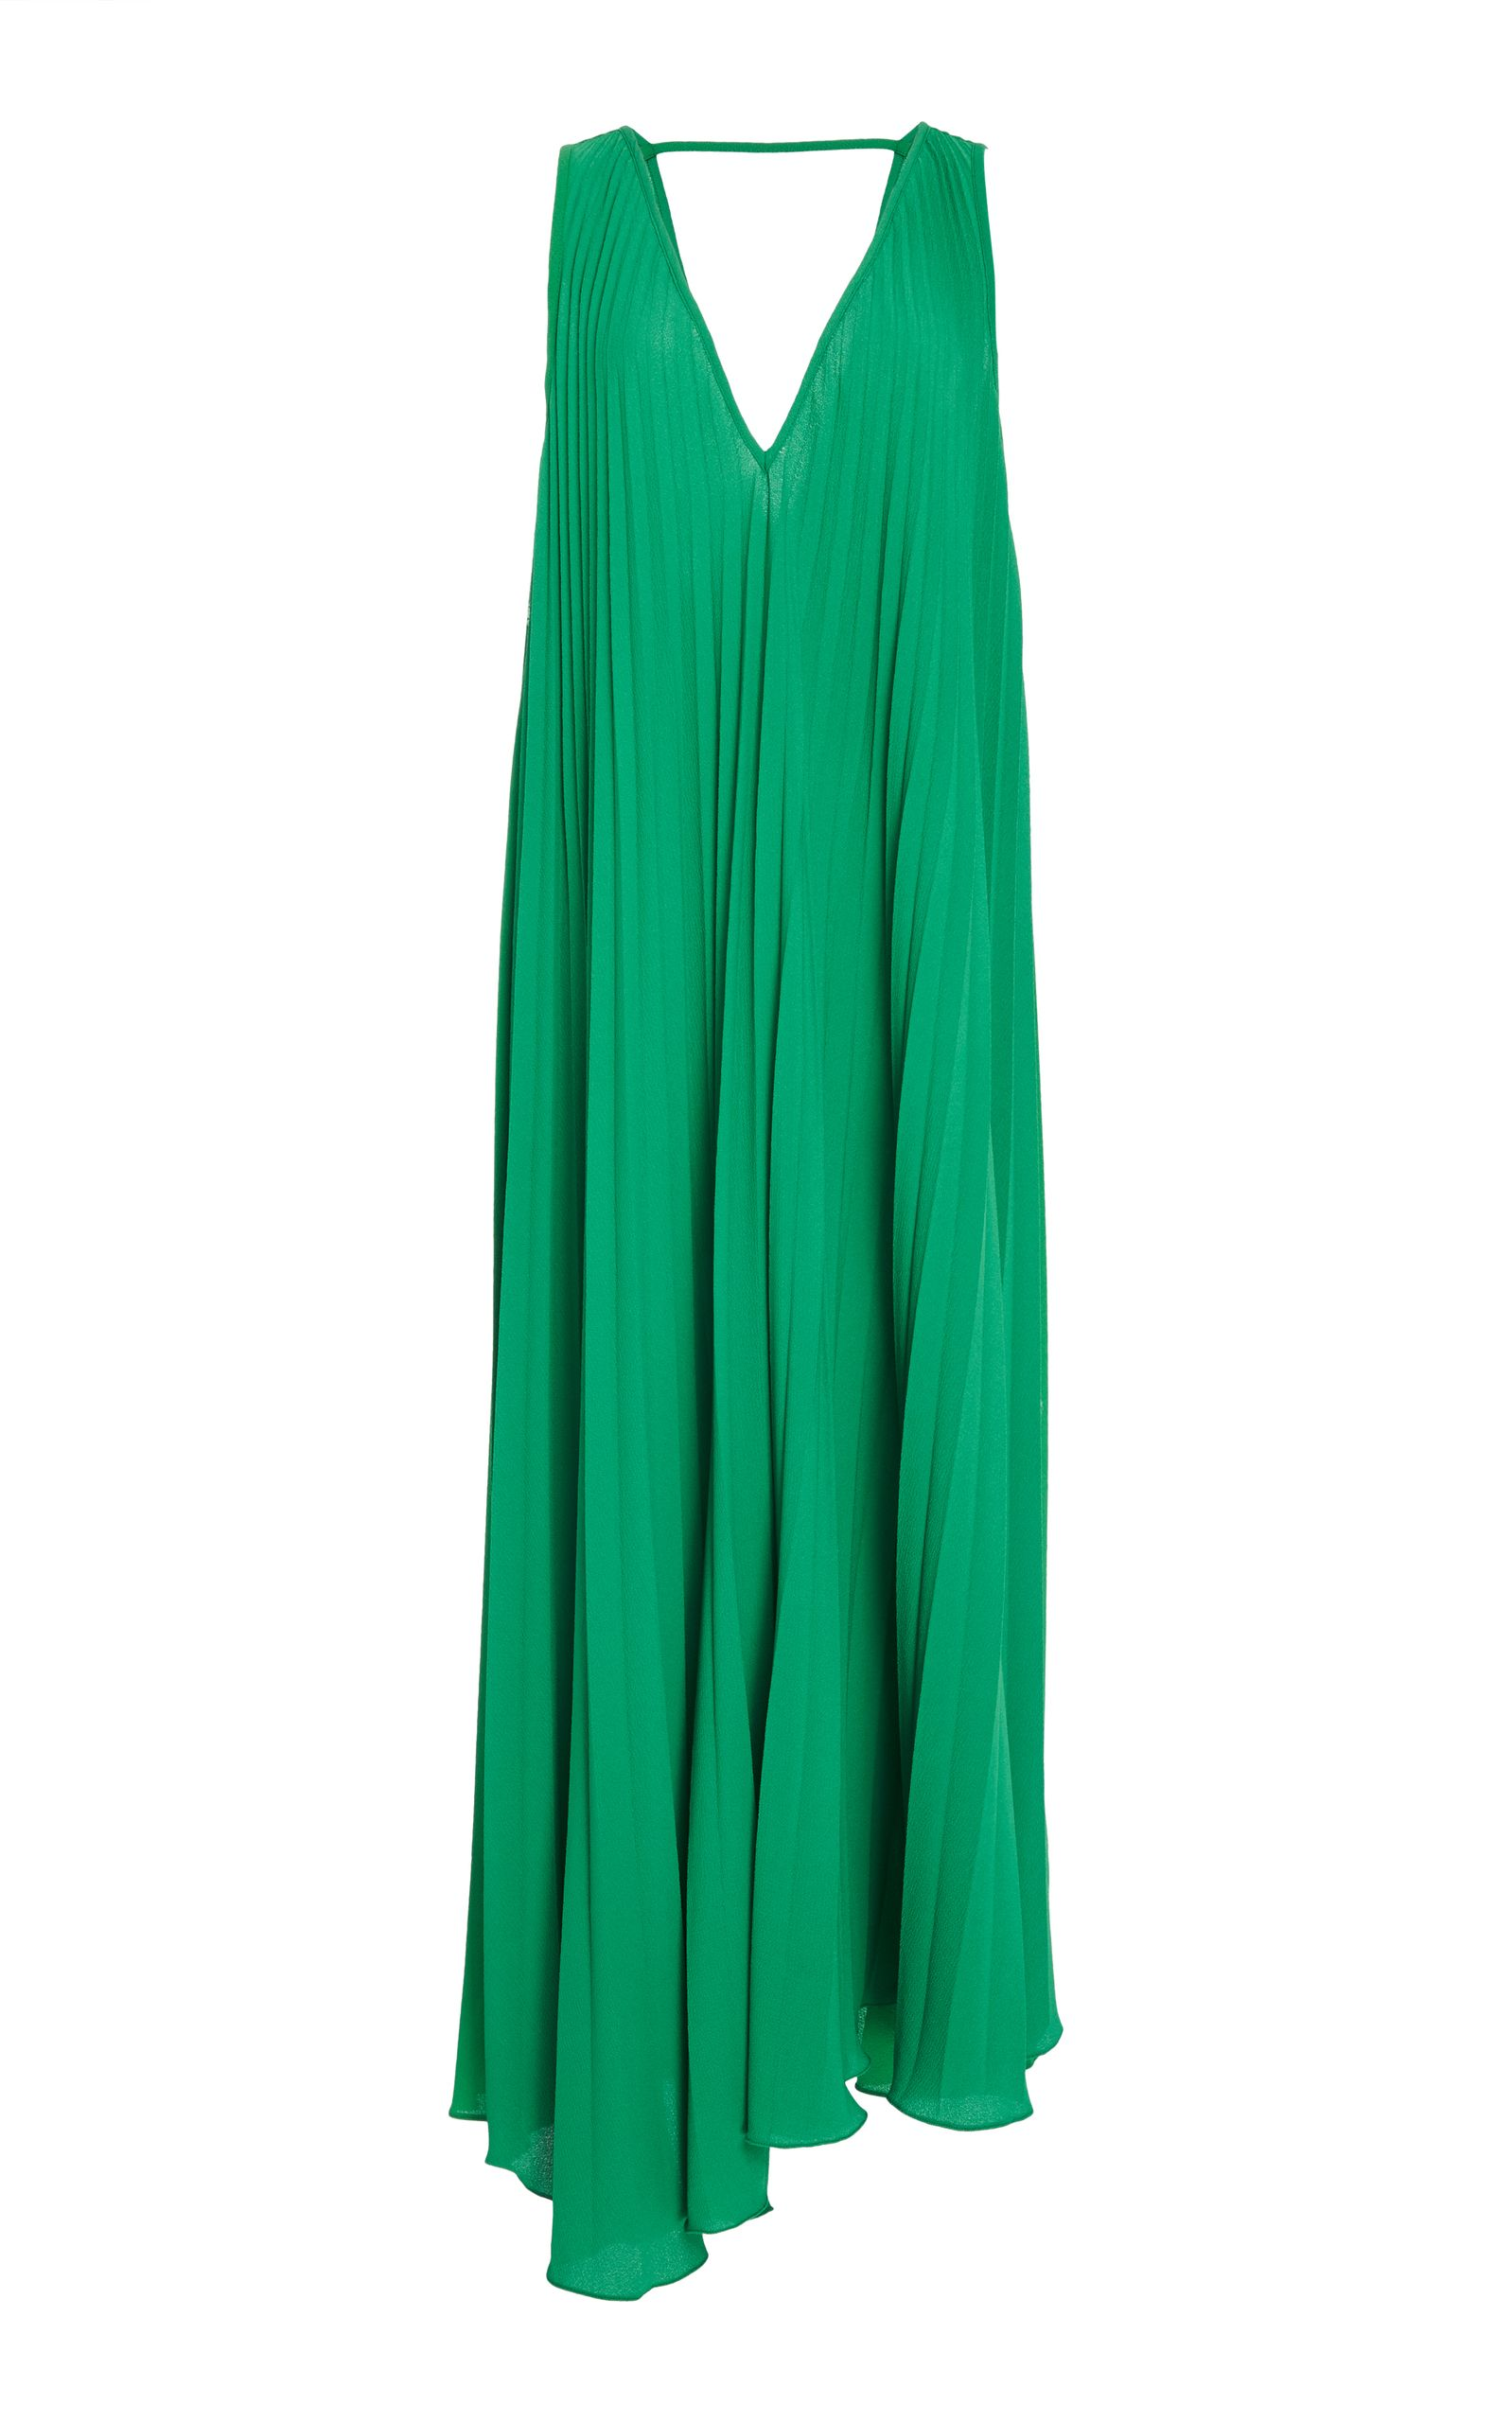 Le Fleur pleated silk maxi skirt Adriana Degreas 353LwW